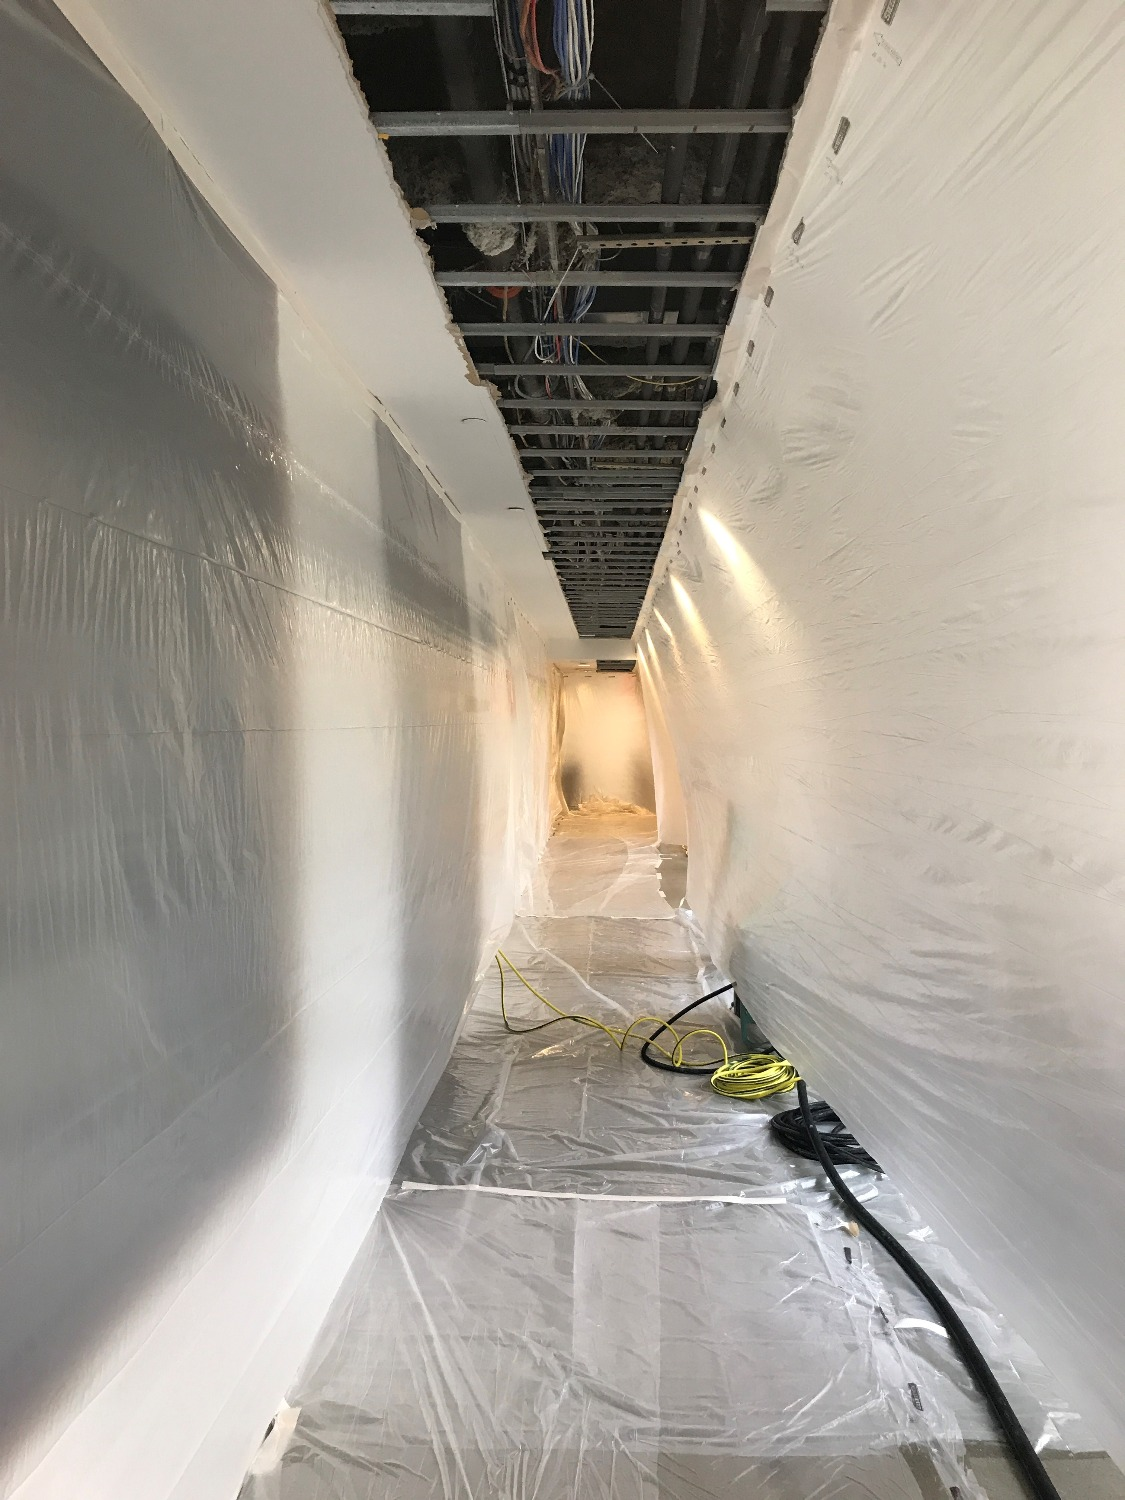 Covering for job_edited